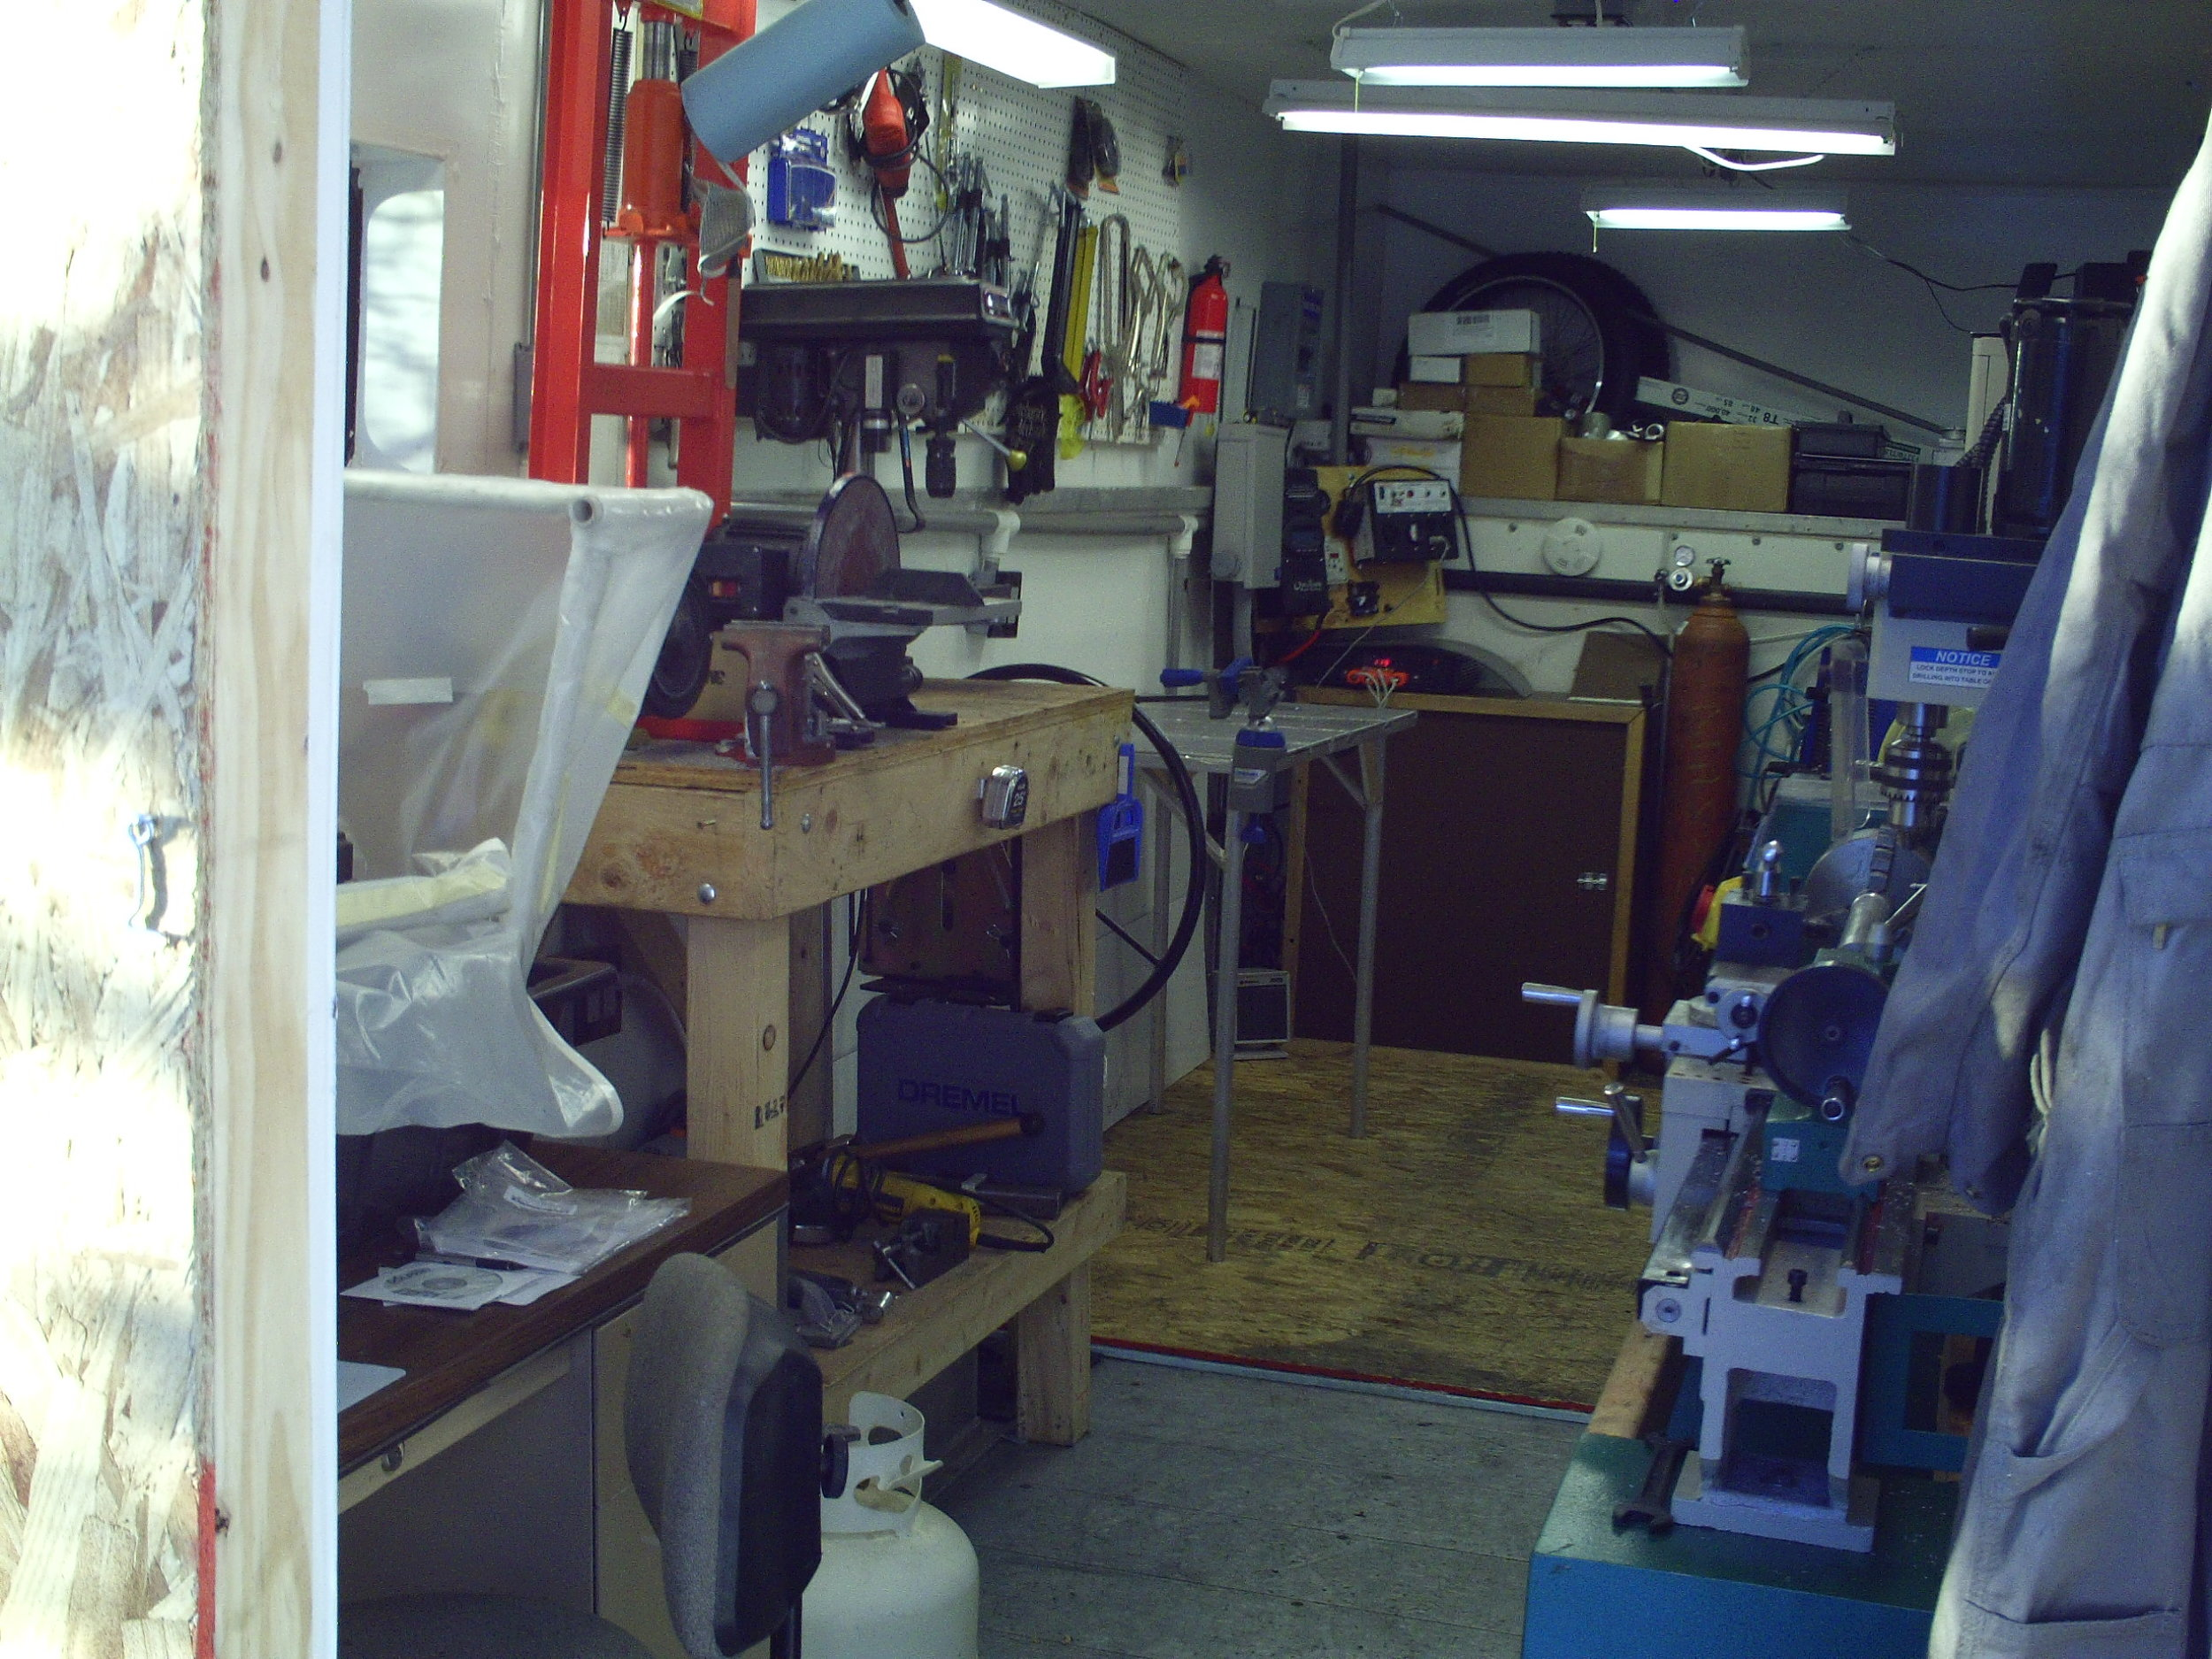 It was a little cramped, but with enough patience, I could build nearly anything in there. The new shop will be a little smaller but hopefully, more capable due to the larger multi function DIY CNC. I definitely miss my Grizzly G0516 manual mill/lathe combo though!